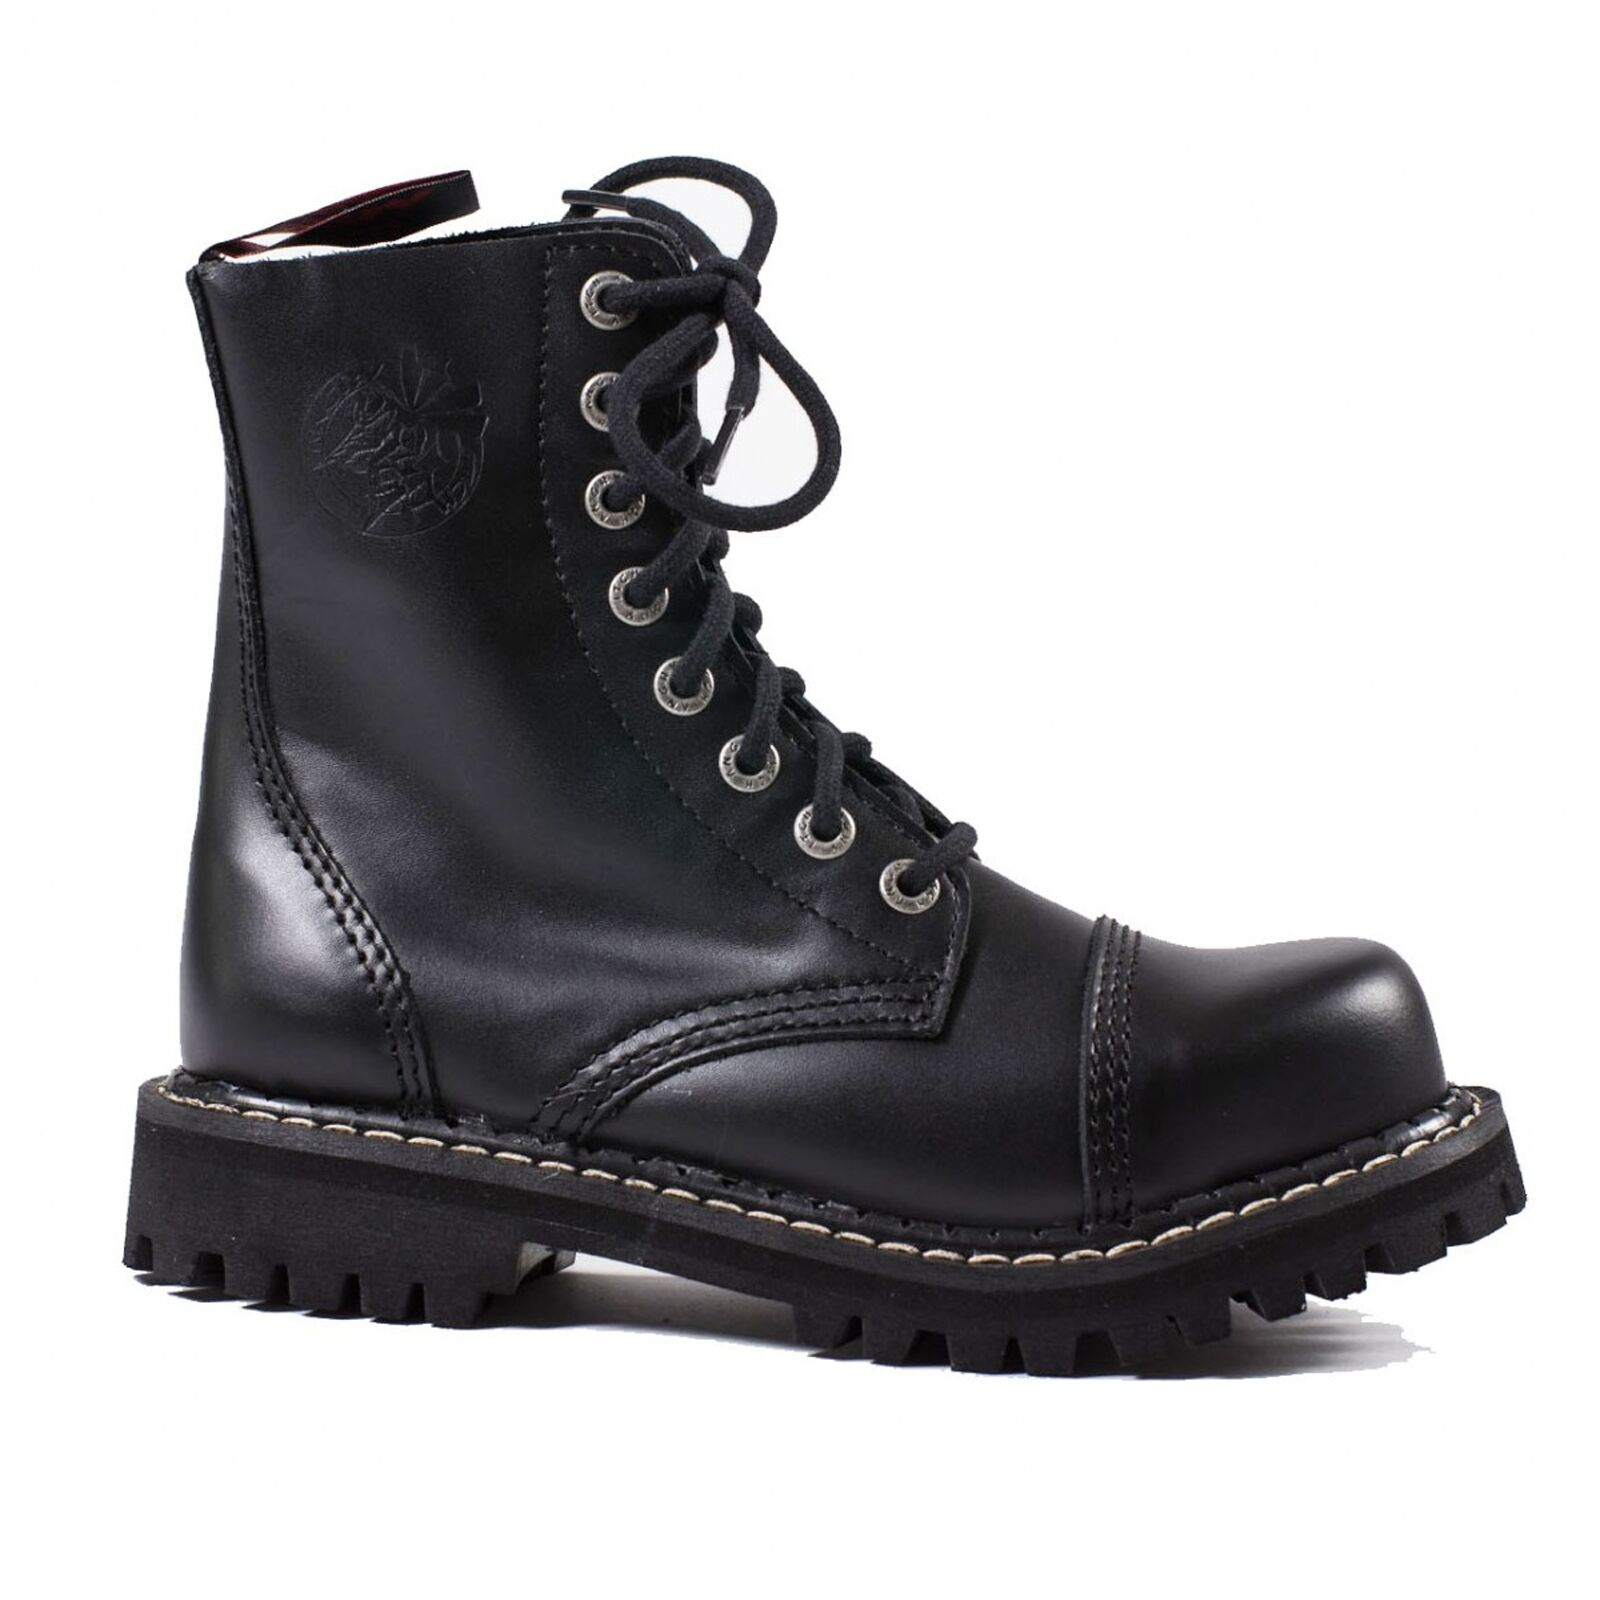 Angry Itch - 8-Loch Gothic Punk Army Ranger Armee Leder Stiefel mit Stahlkappe 3